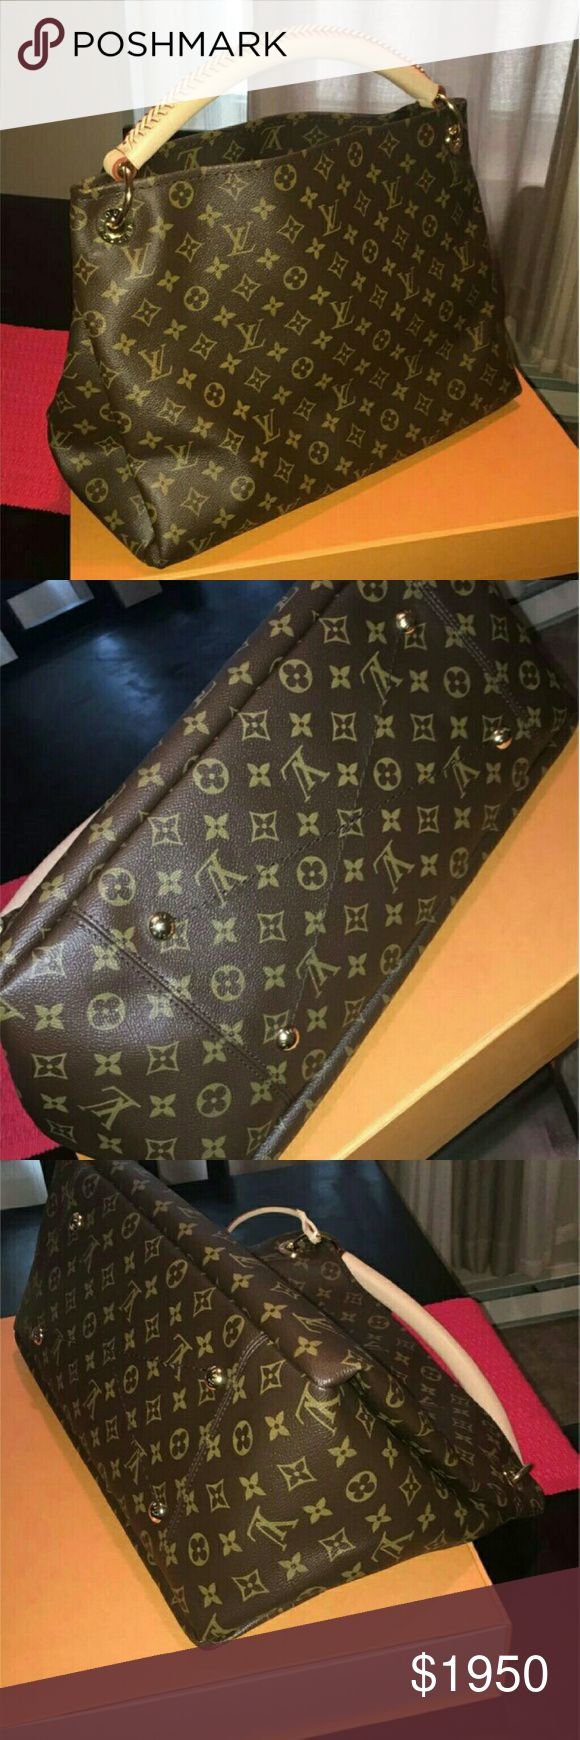 Brand new Artsy MM Brand new, never used Louis Vuitton Artsy MM in monogram. Was meant to be a gift, but things changed and the bag cannot be returned.  Purchased end of October 2016. Comes with dust bag, box, receipts  Price listed is through p...ay.pa..l. Louis Vuitton Bags Shoulder Bags